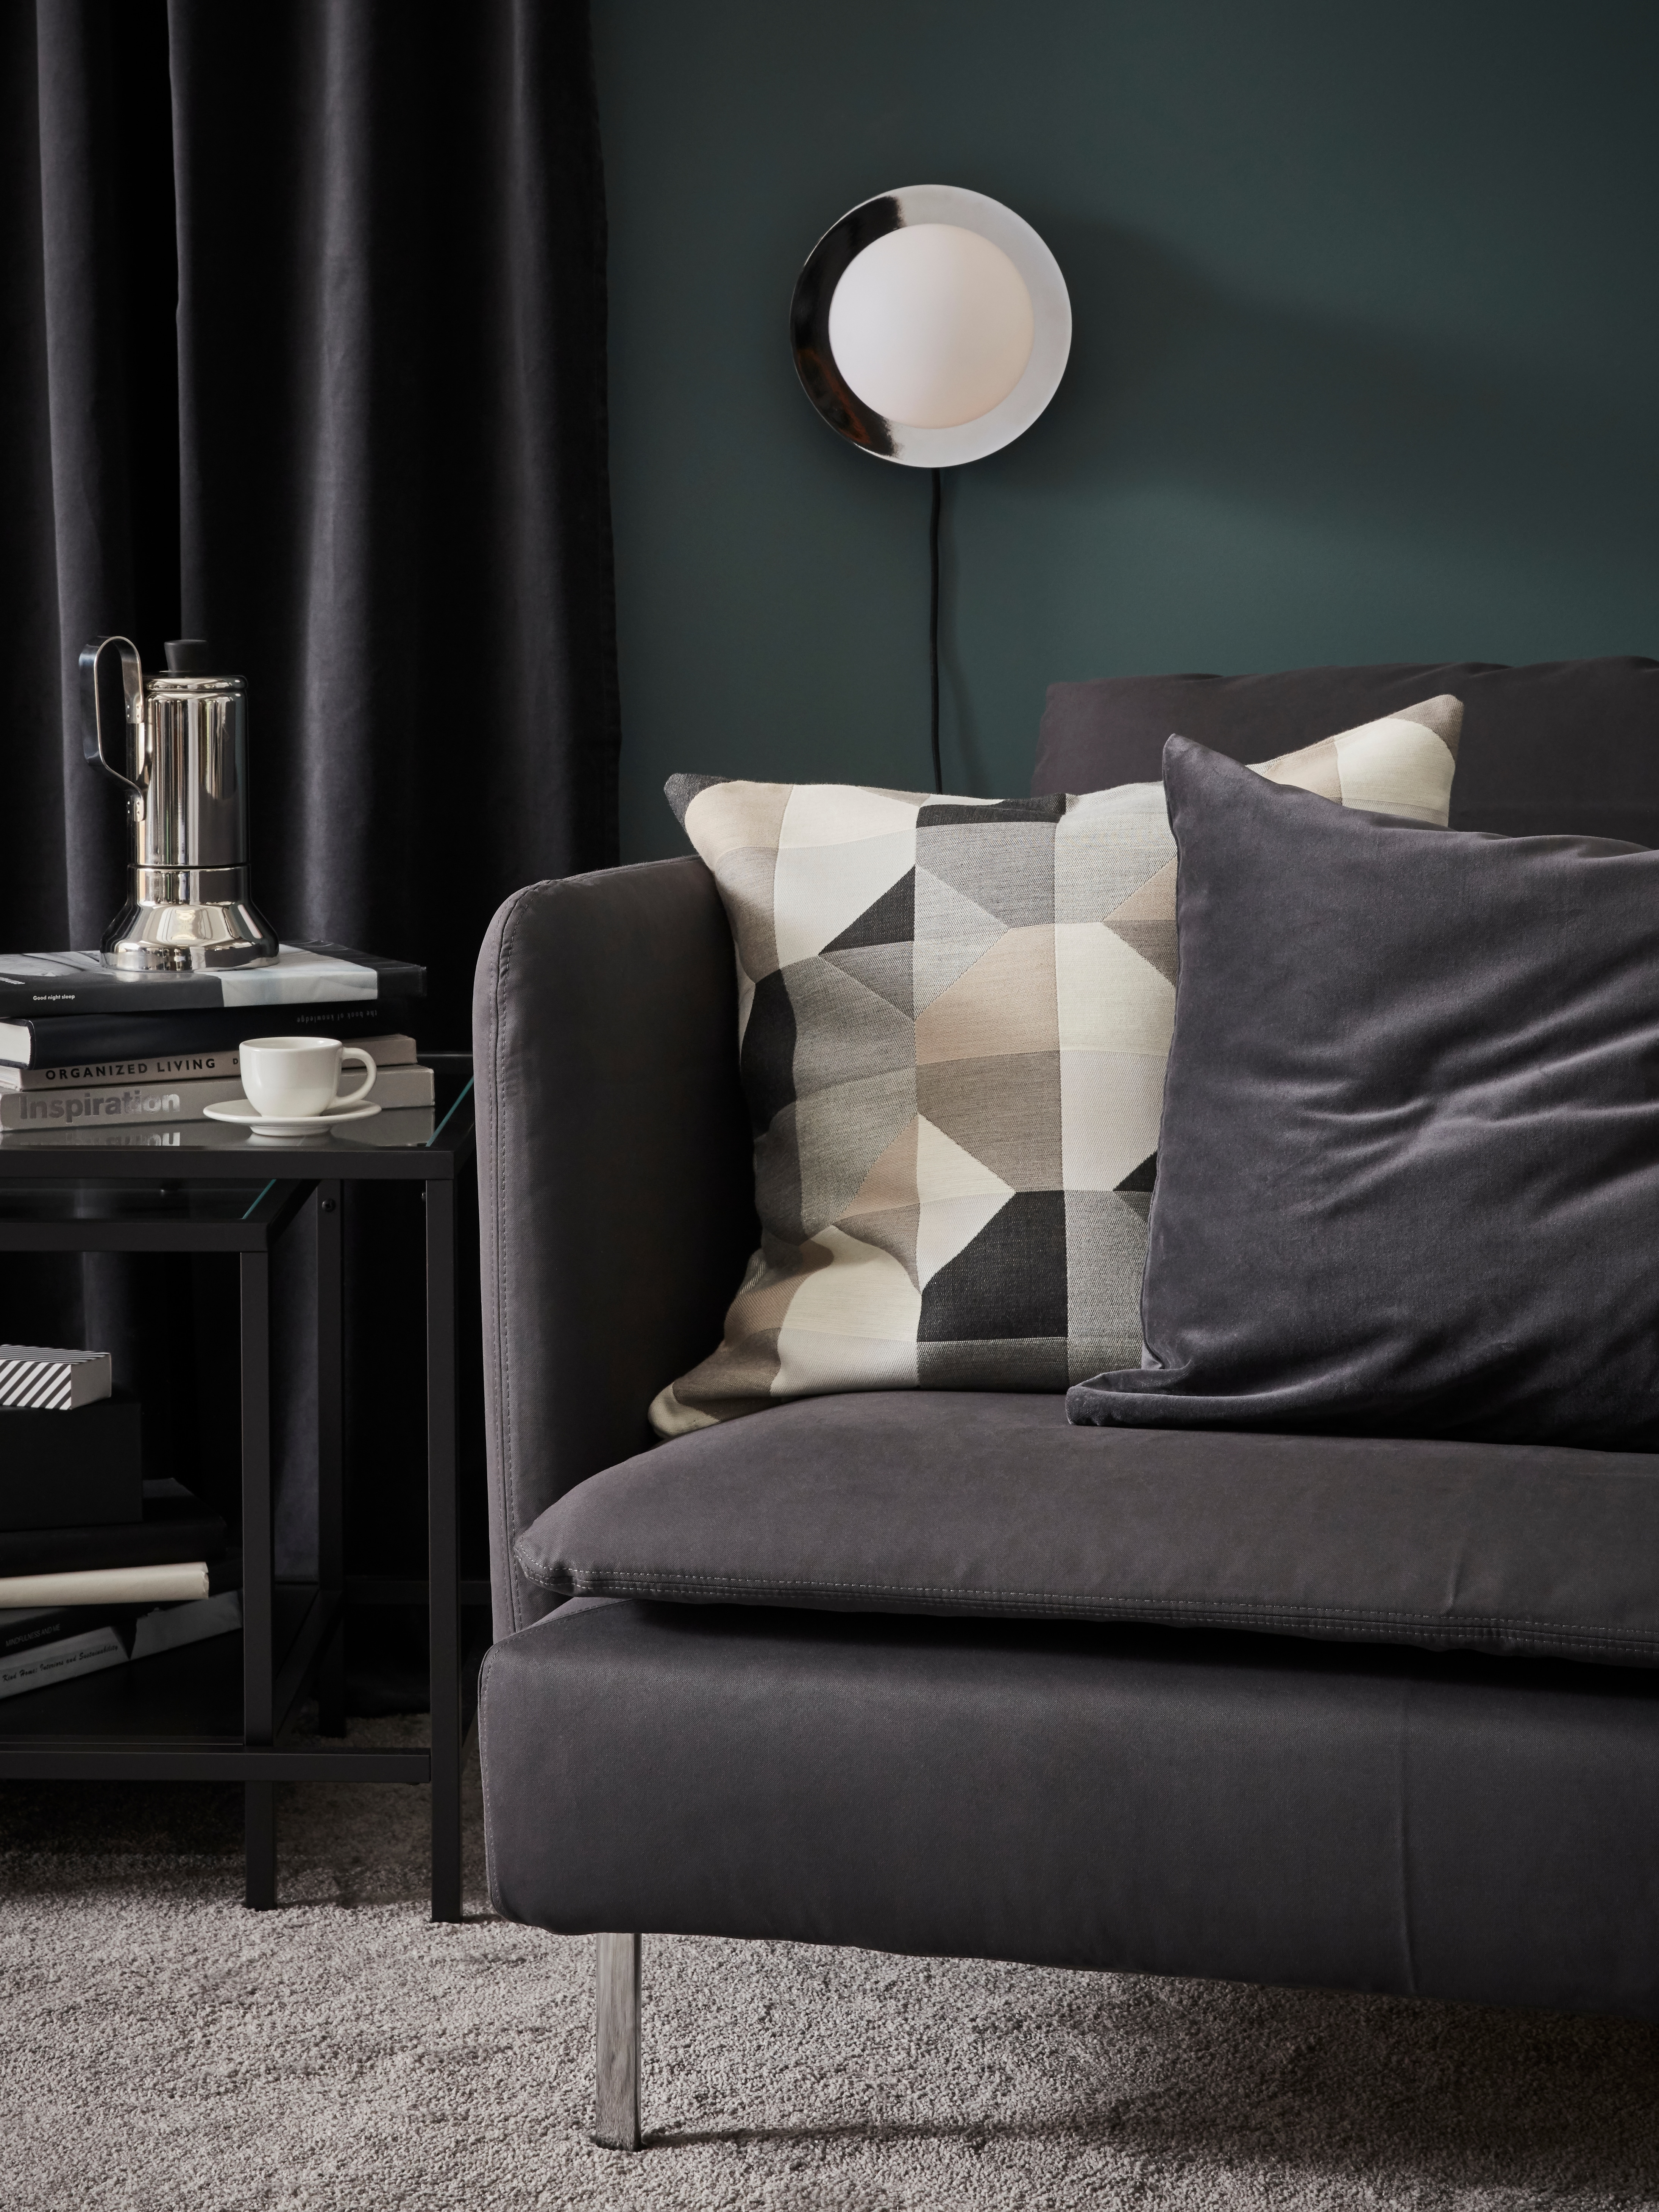 A SIMRISHAMN wall lamp behind a grey sofa with two cushions in neutral tones and a side table with coffee pot and cup.